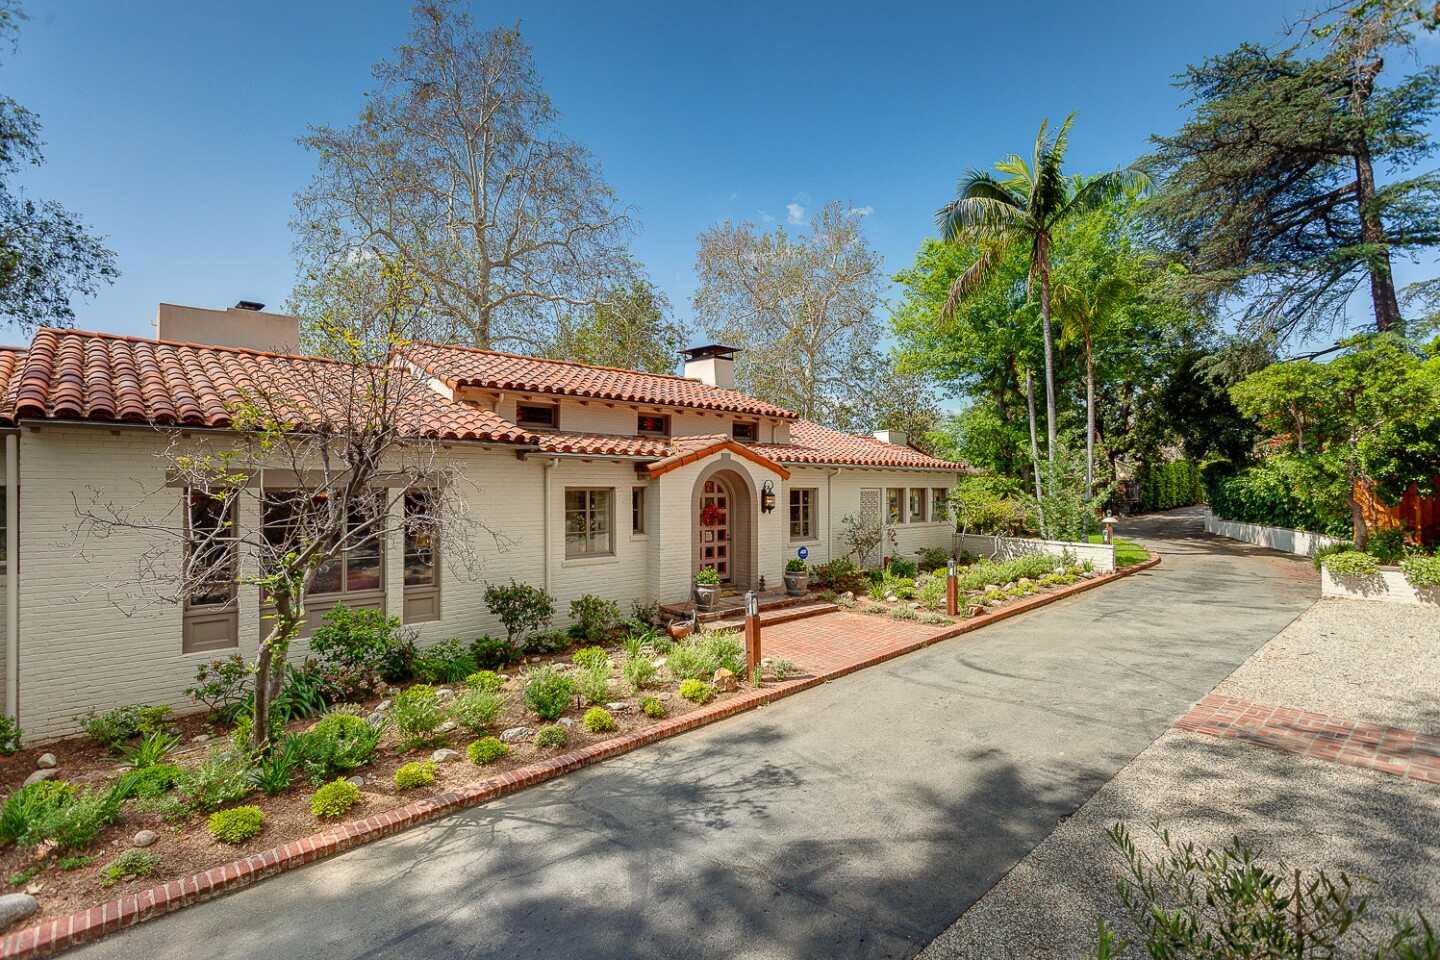 Home of the Day | Sierra Madre